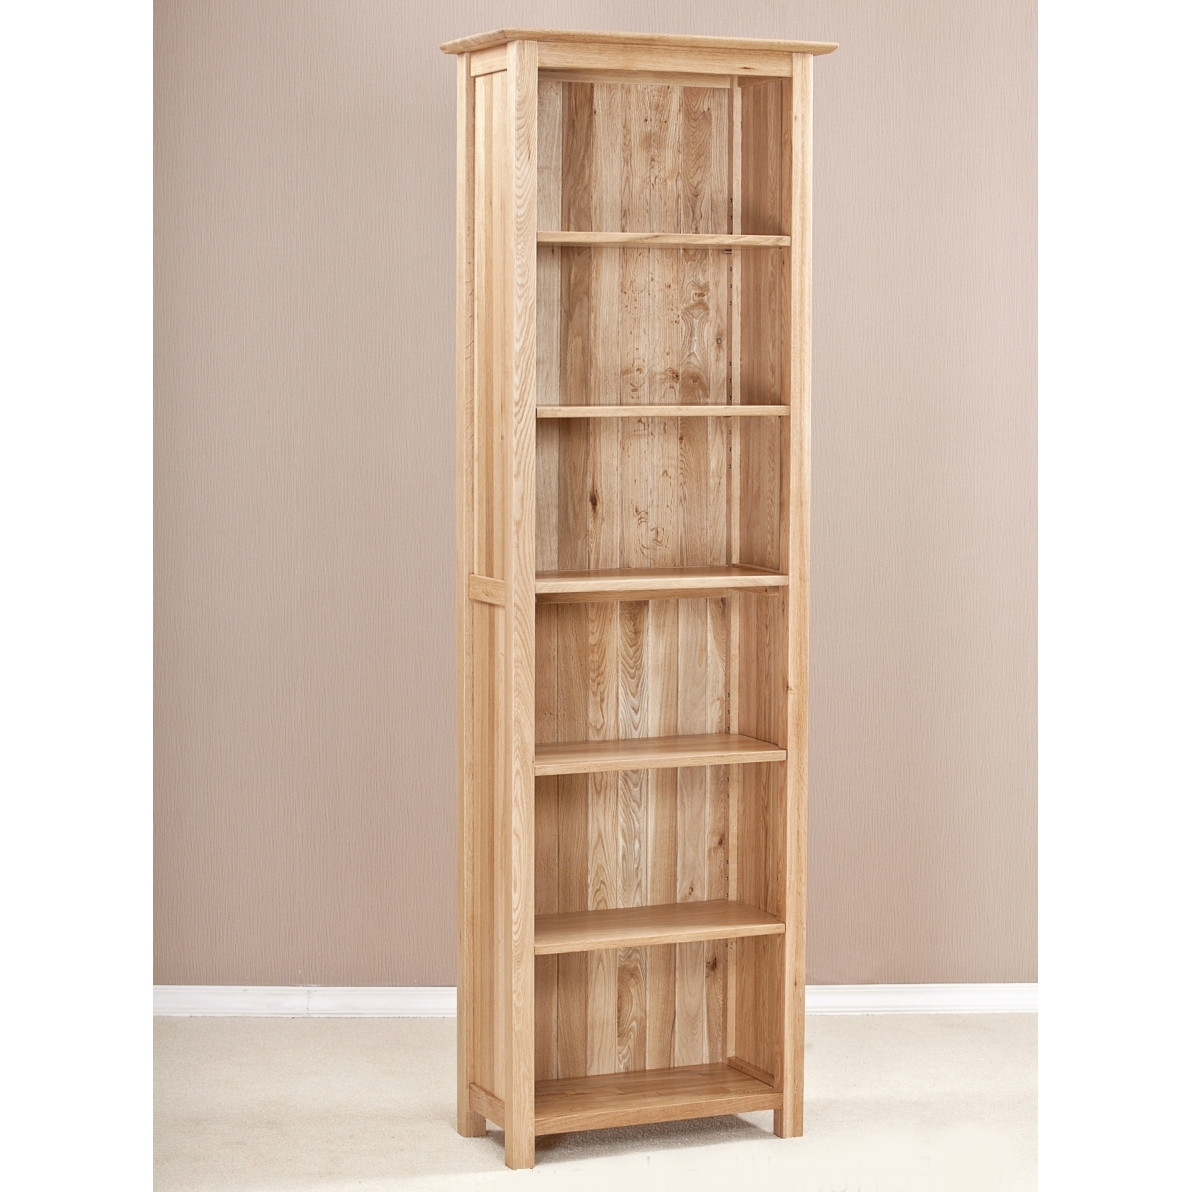 Most Popular Bookcases Ideas: Solid Wood Bookcases, Birch Bookcases, Unfinished Throughout Solid Oak Bookcases (View 10 of 15)